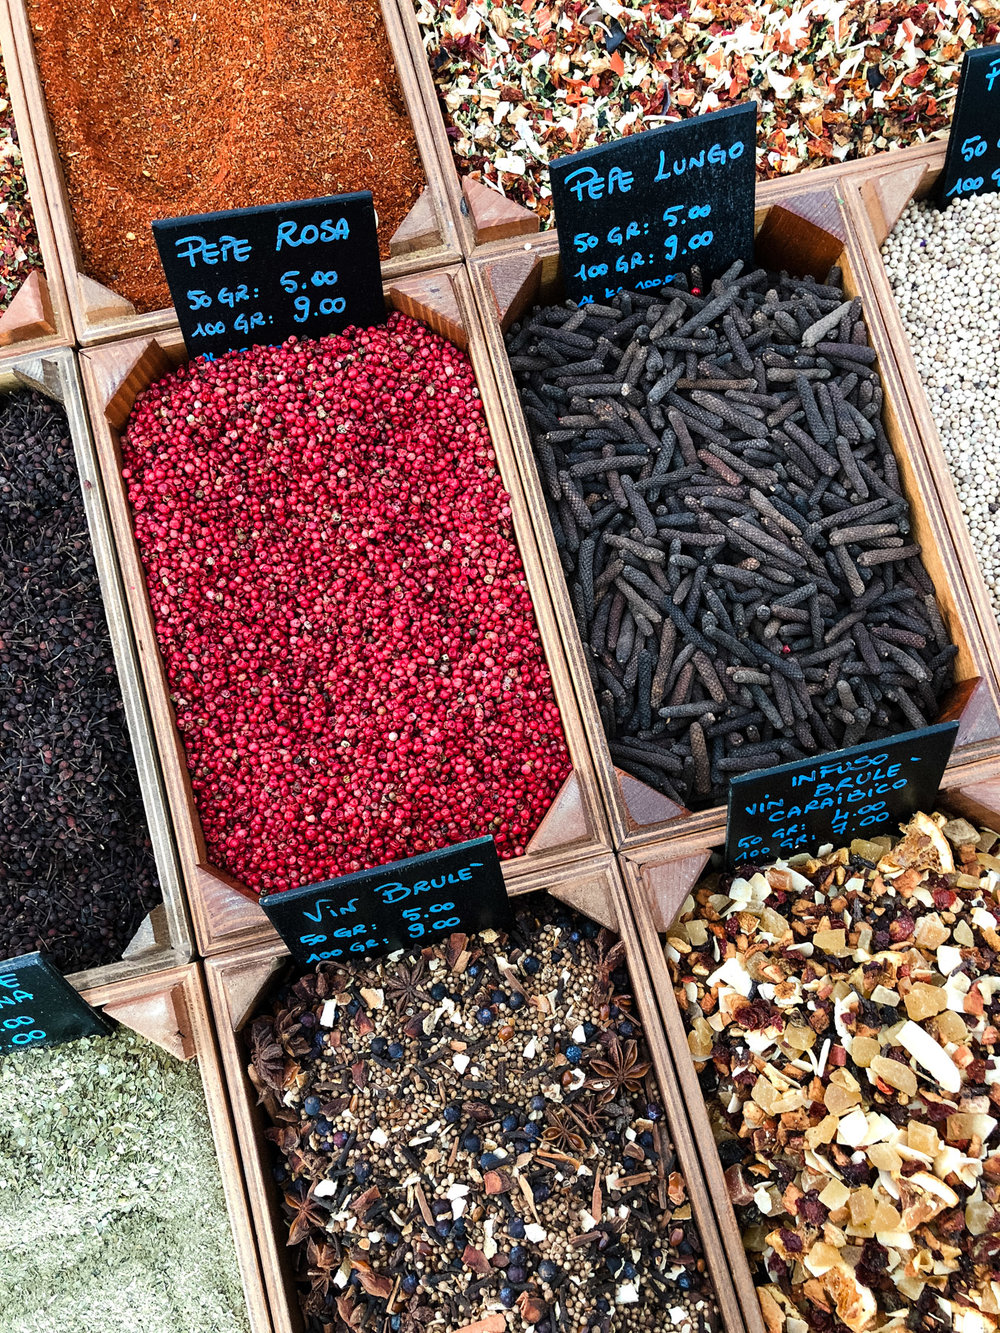 Vibrant & aromatic spices at Murabilia.